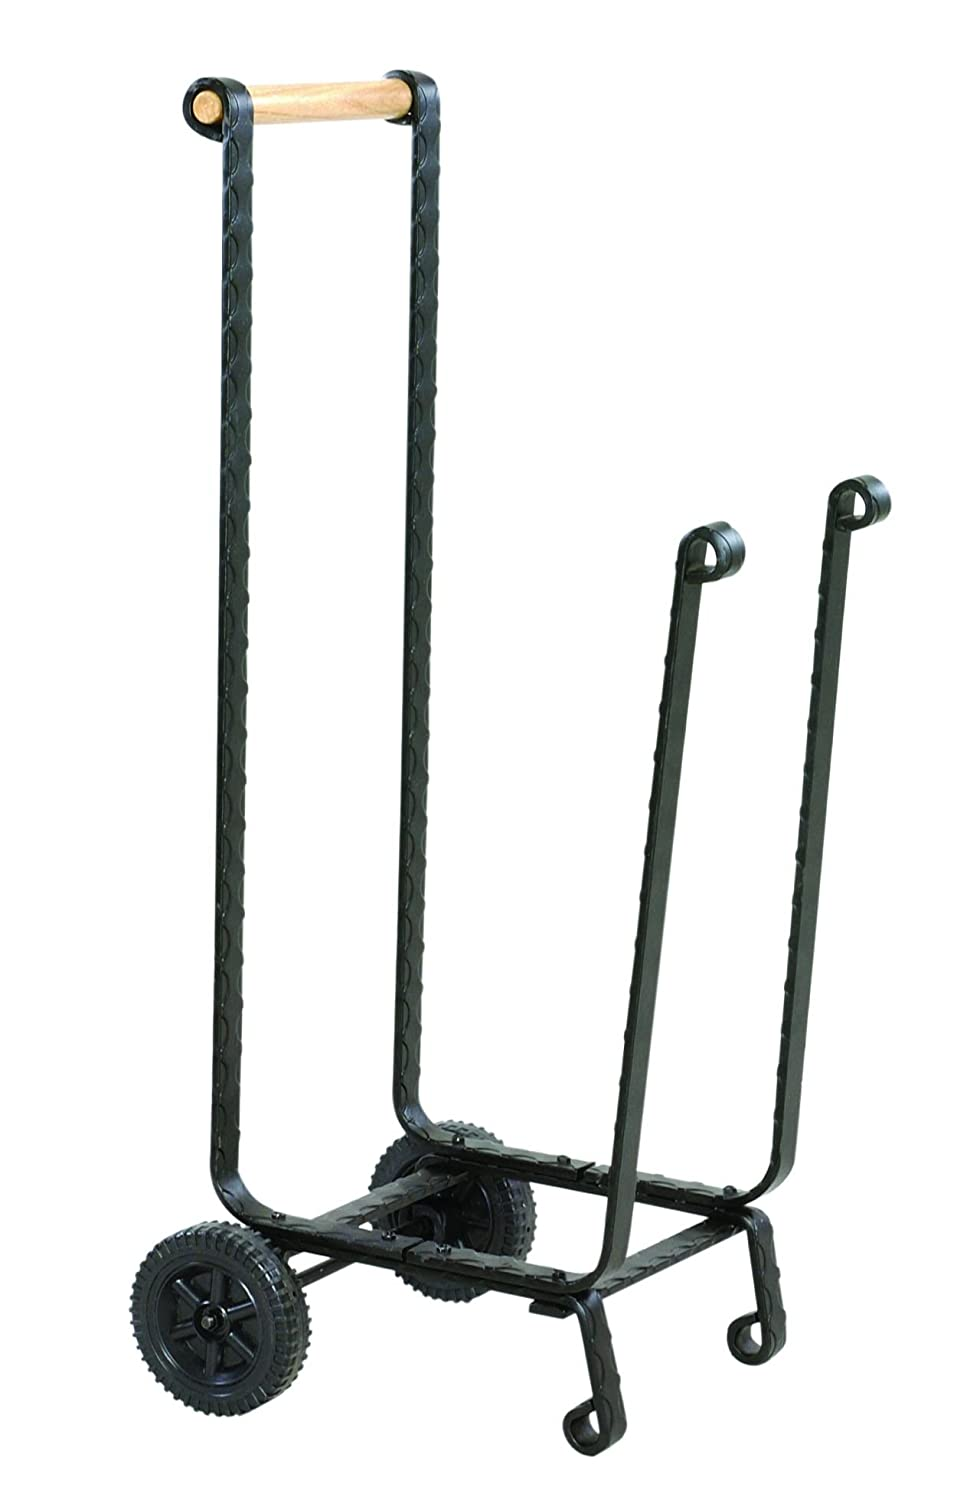 Uniflame Log Rack With Wheels, Large, Black blue rhino W-1151